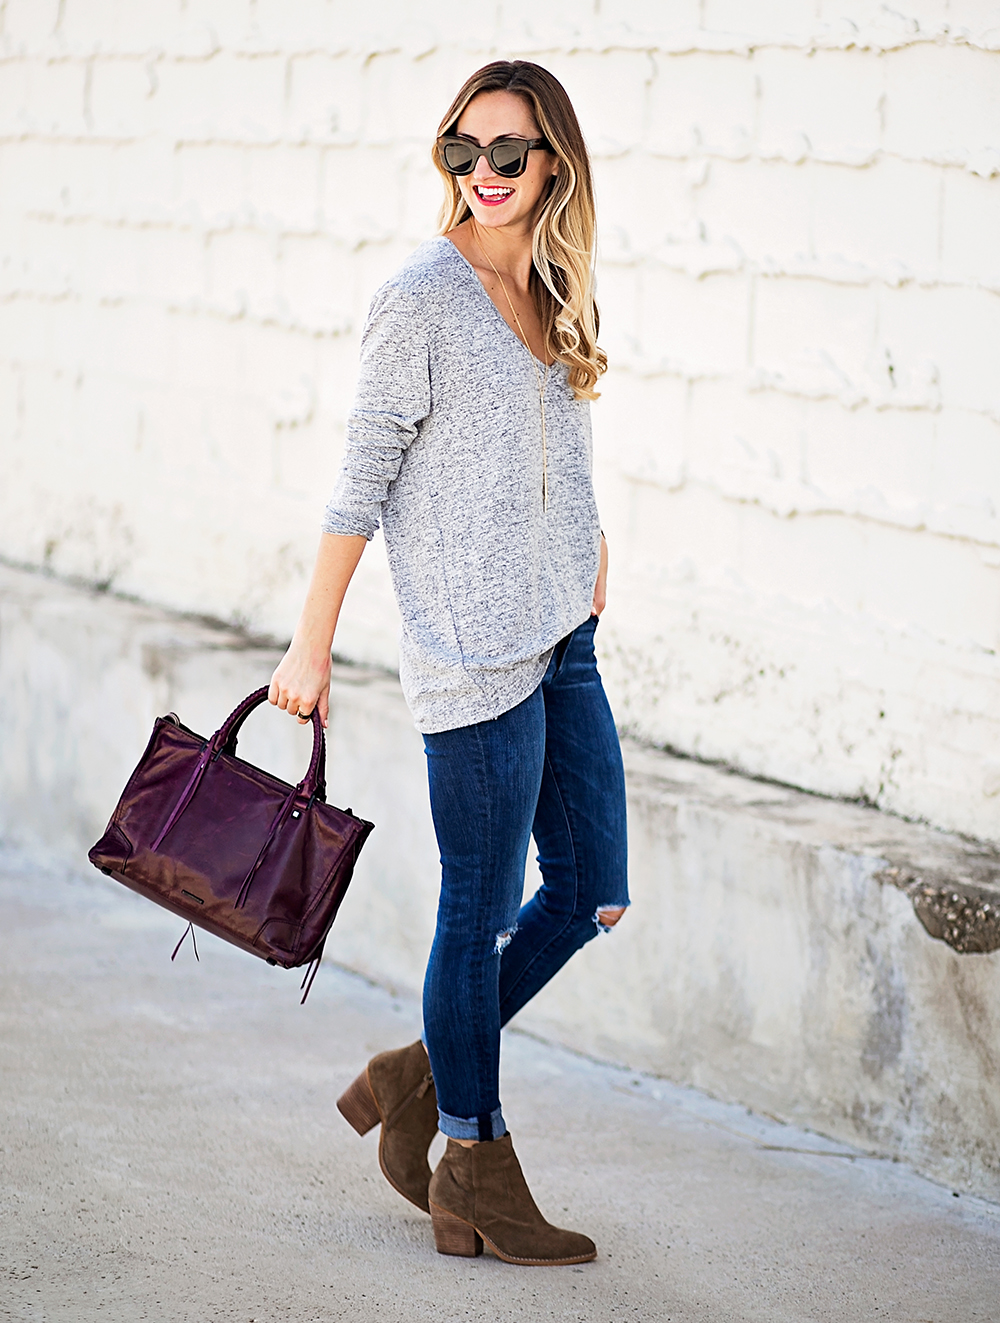 livvyland-blog-olivia-watson-nordstrom-fall-outfit-grey-sweater-booties-madewell-plaid-poncho-rebecca-minkoff-regan-satchel-burgundy-oxblood-1